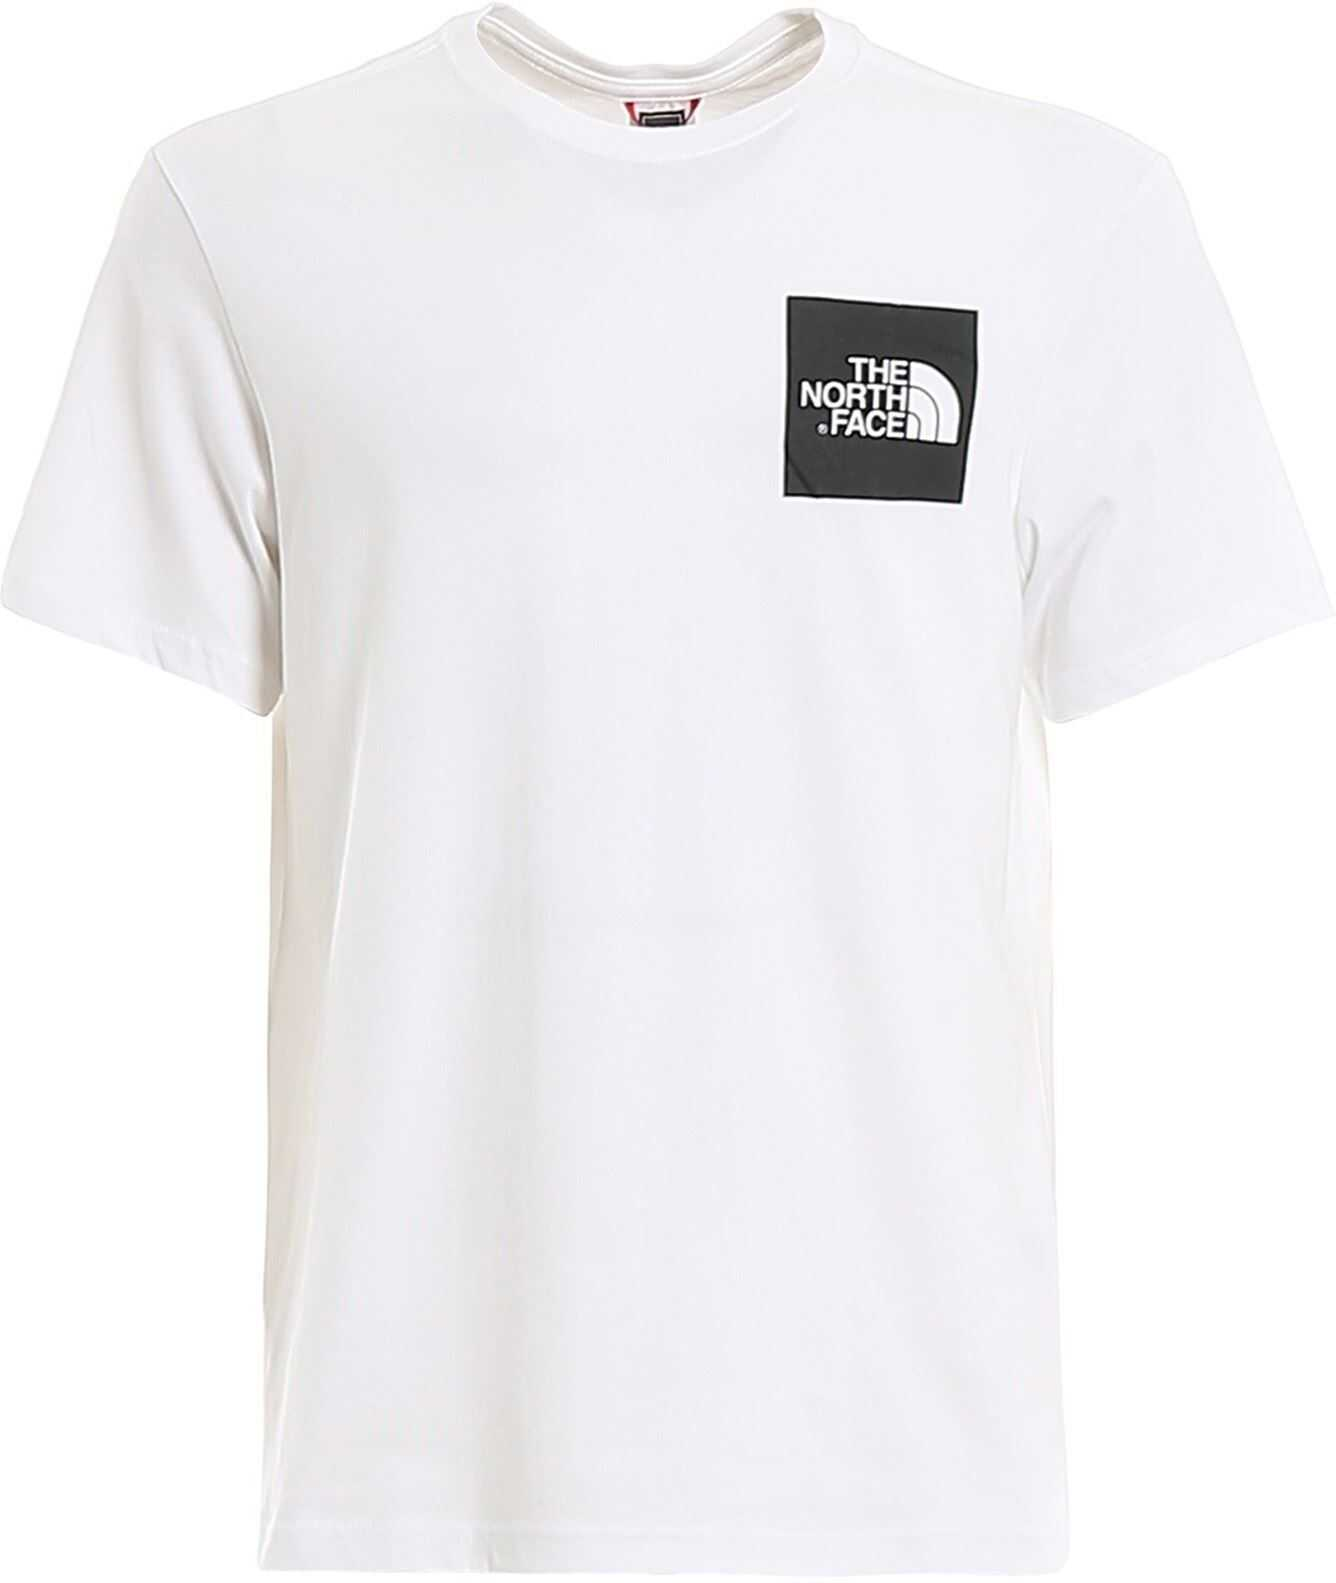 The North Face Logo Print Jersey Tee White